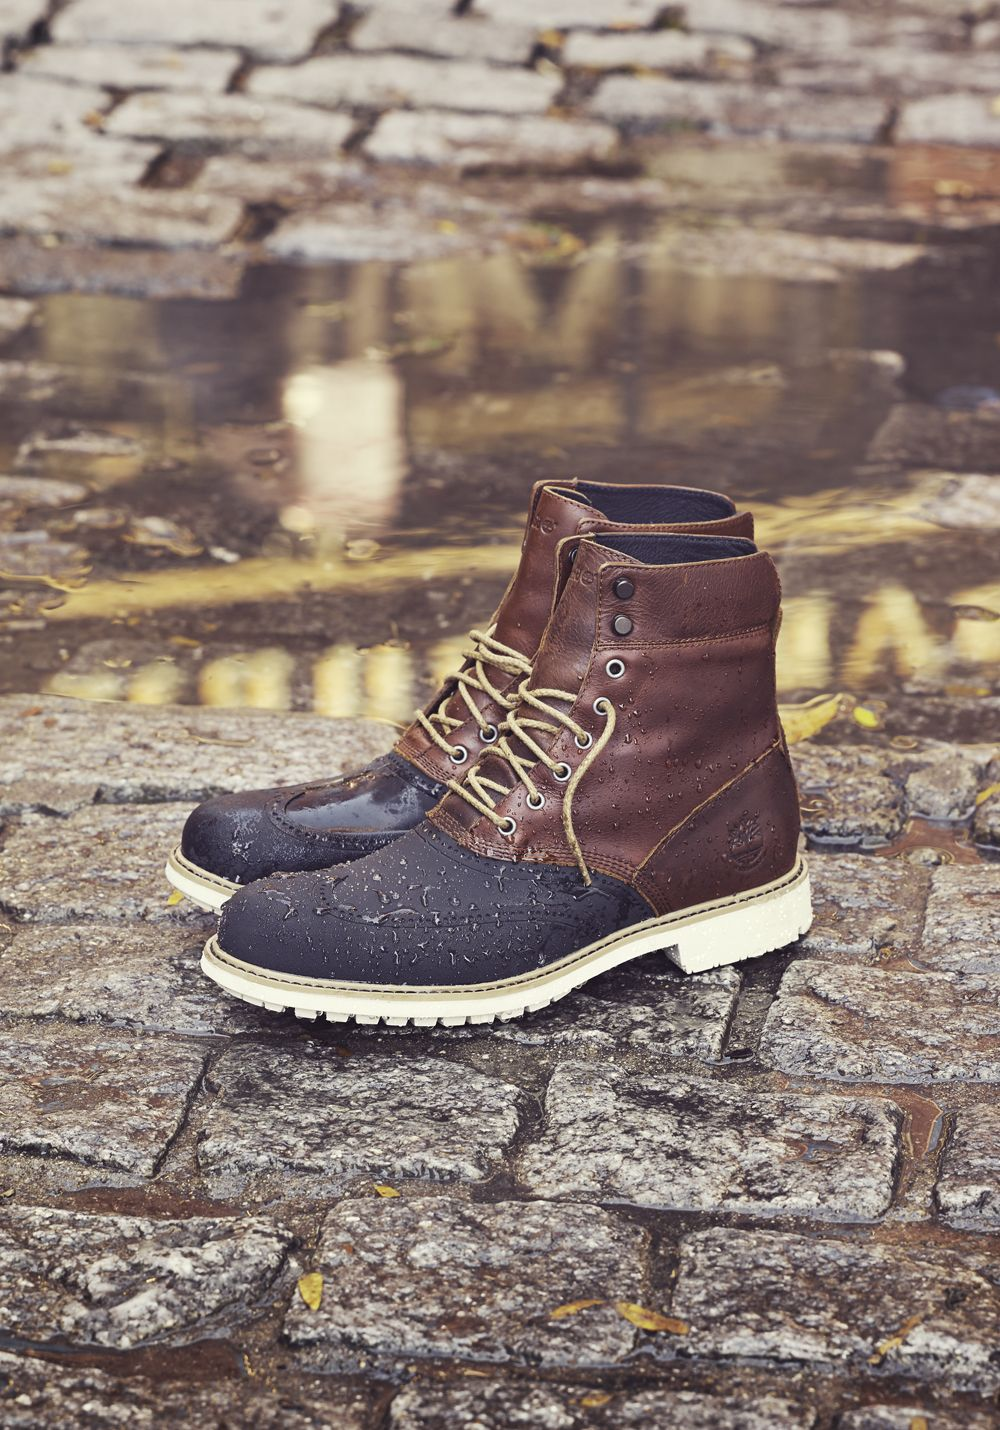 686b07dad9e Our Stormbuck Duck boot will keep your feet dry and in style with  seam-sealed, waterproof leather. #fallstyle #timberland #inmyelement  #fallcollection #fall ...